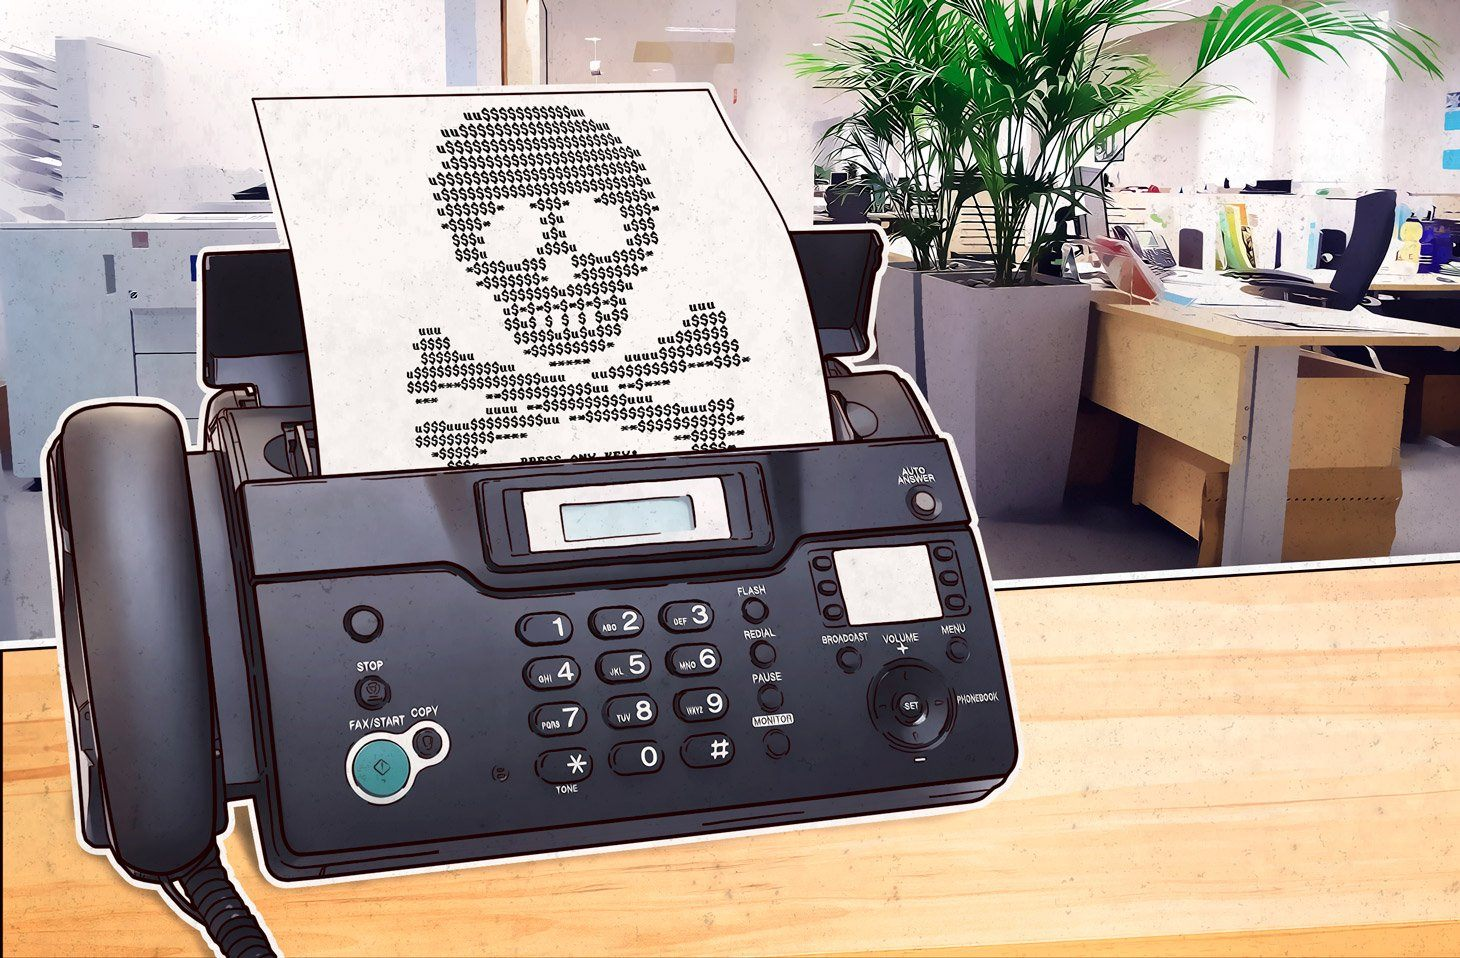 8 funs facts about fax. Yes, fax!